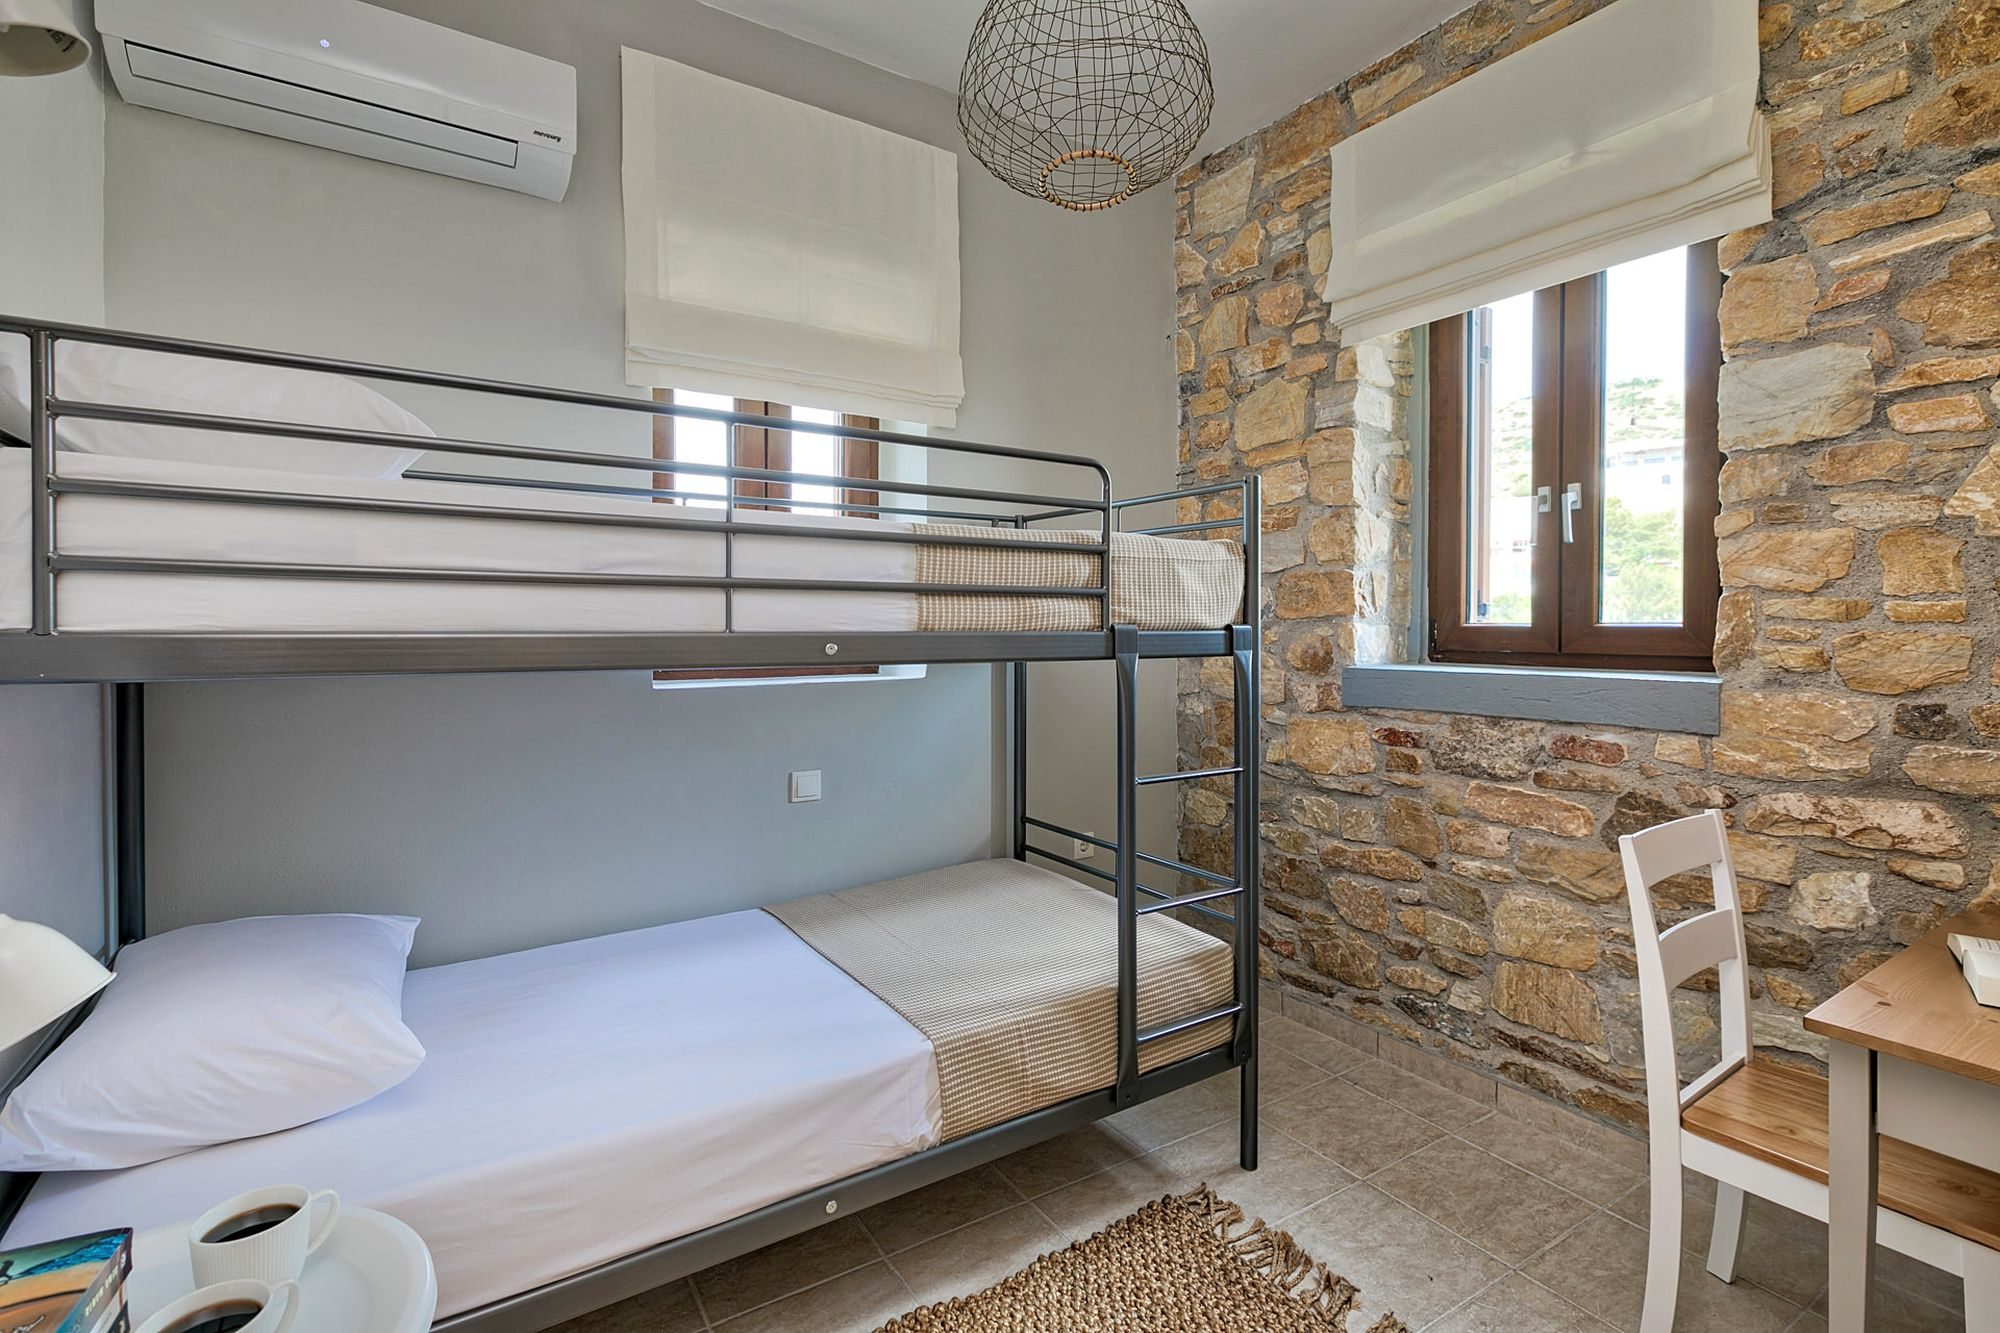 Twin stone-built bedroom with bunk beds, a bedside table and a small desk.